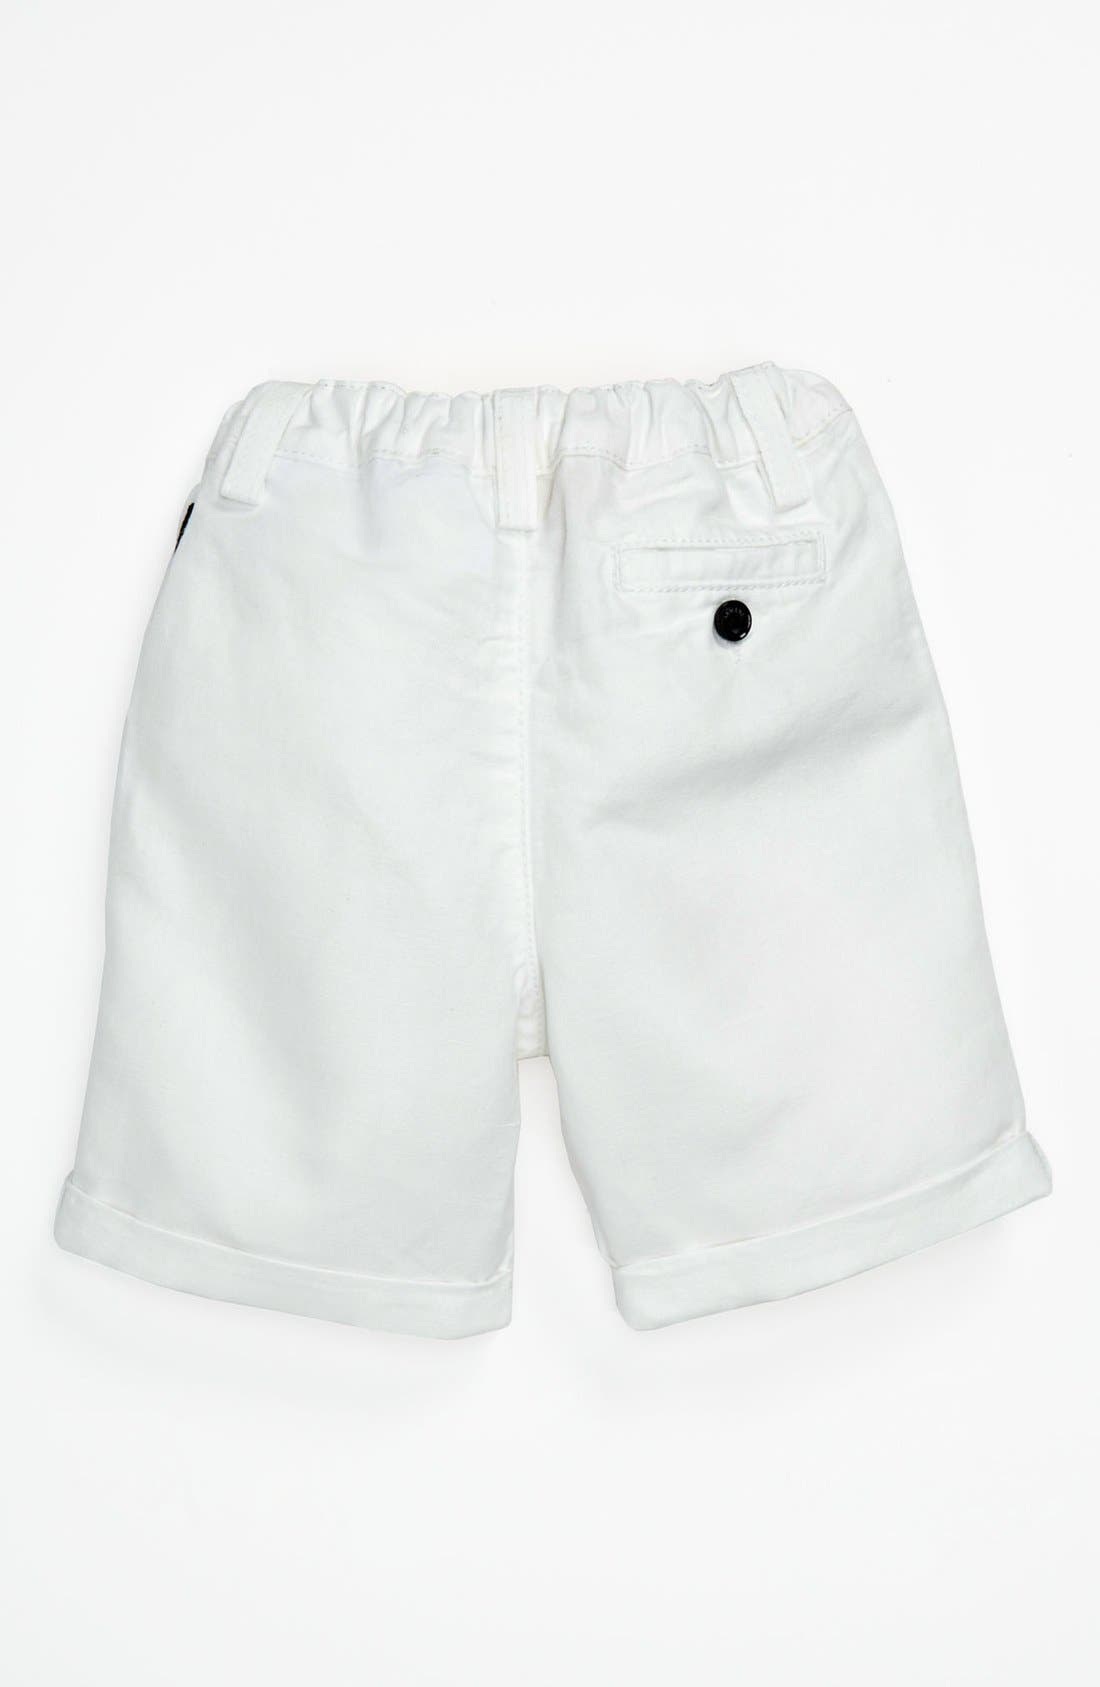 Alternate Image 2  - Armani Junior Shorts (Baby)